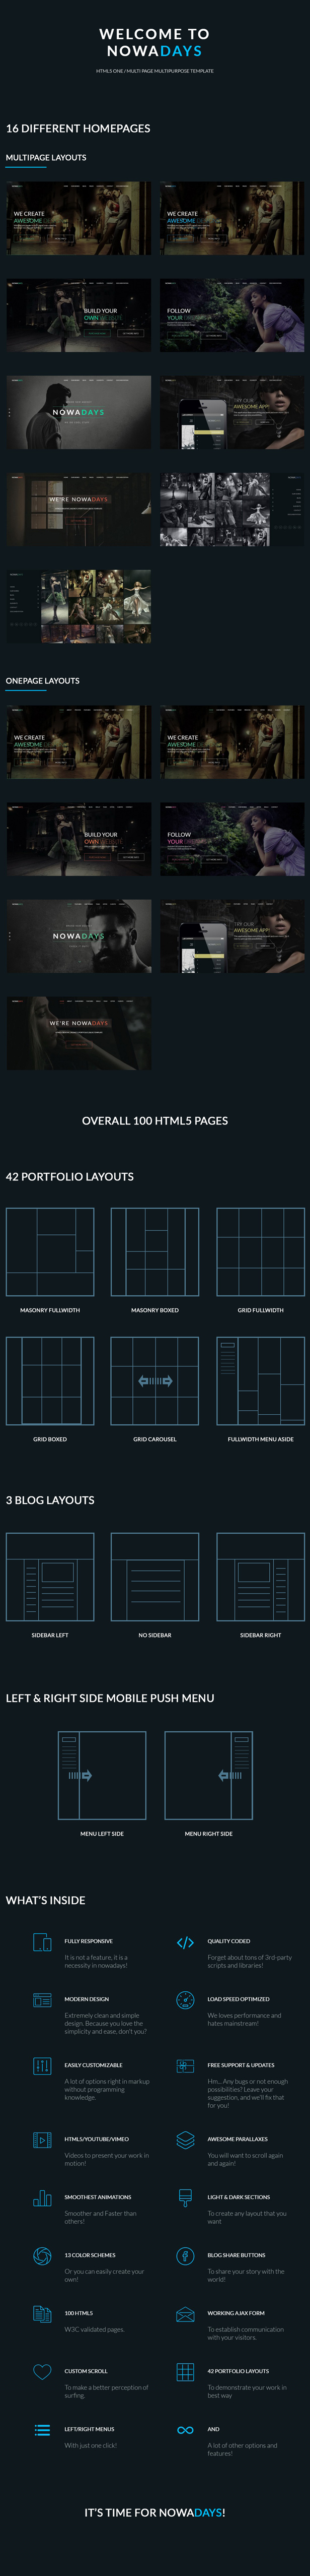 NowaDays - Multipurpose One/Multipage Creative Agency HTML5 Template - 7